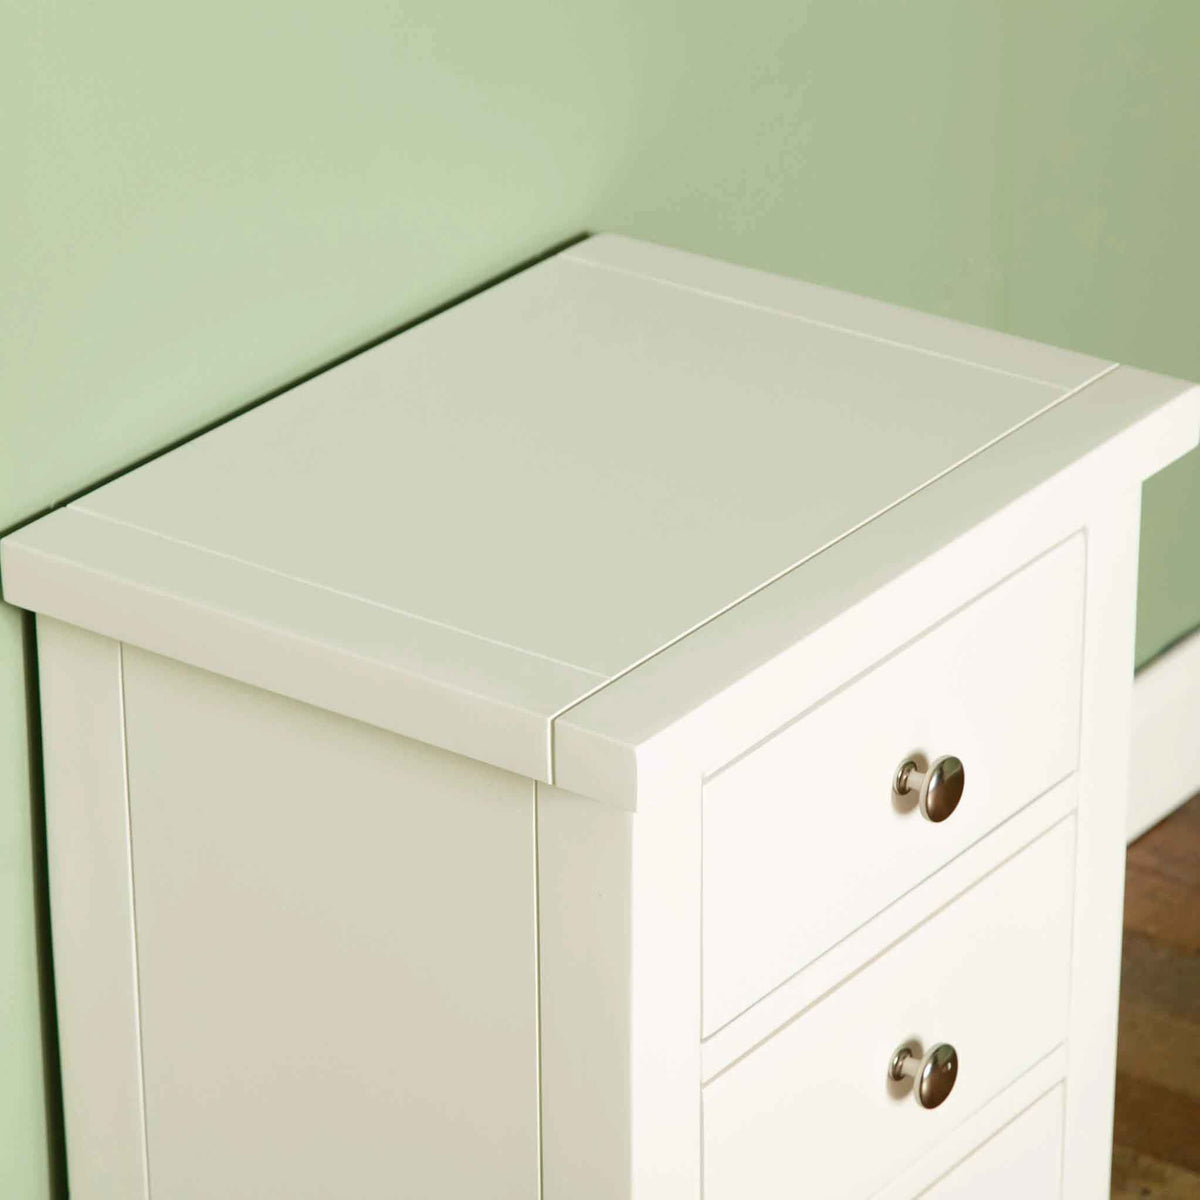 Tabletop view of The Cornish White Wooden 3 Drawer Bedside Table